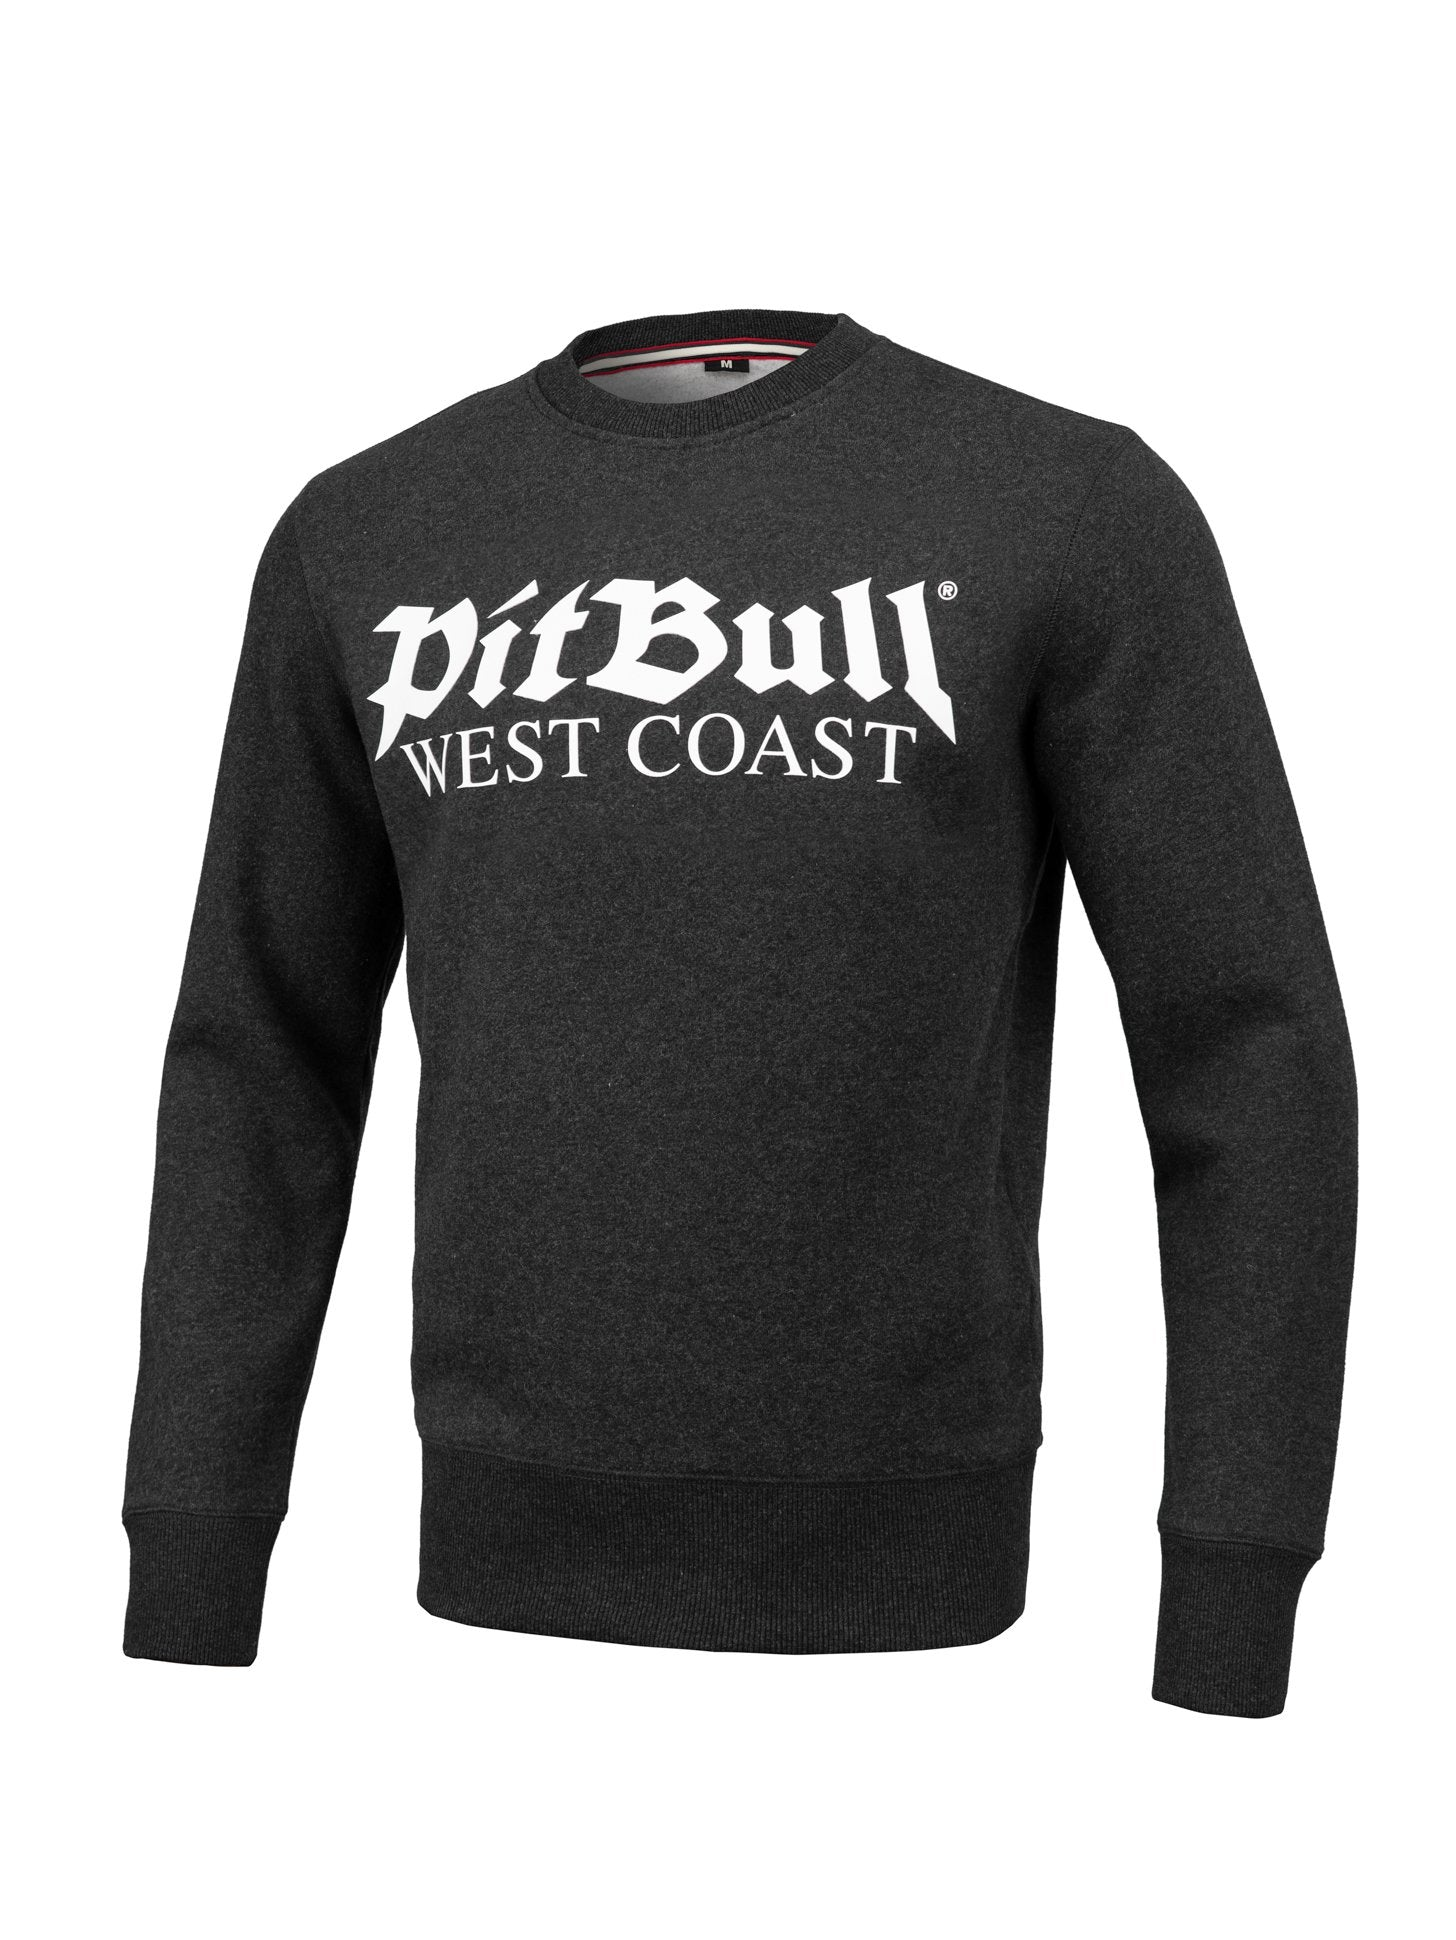 Crewneck Old Logo 2020 Charcoal Melange - pitbullwestcoast